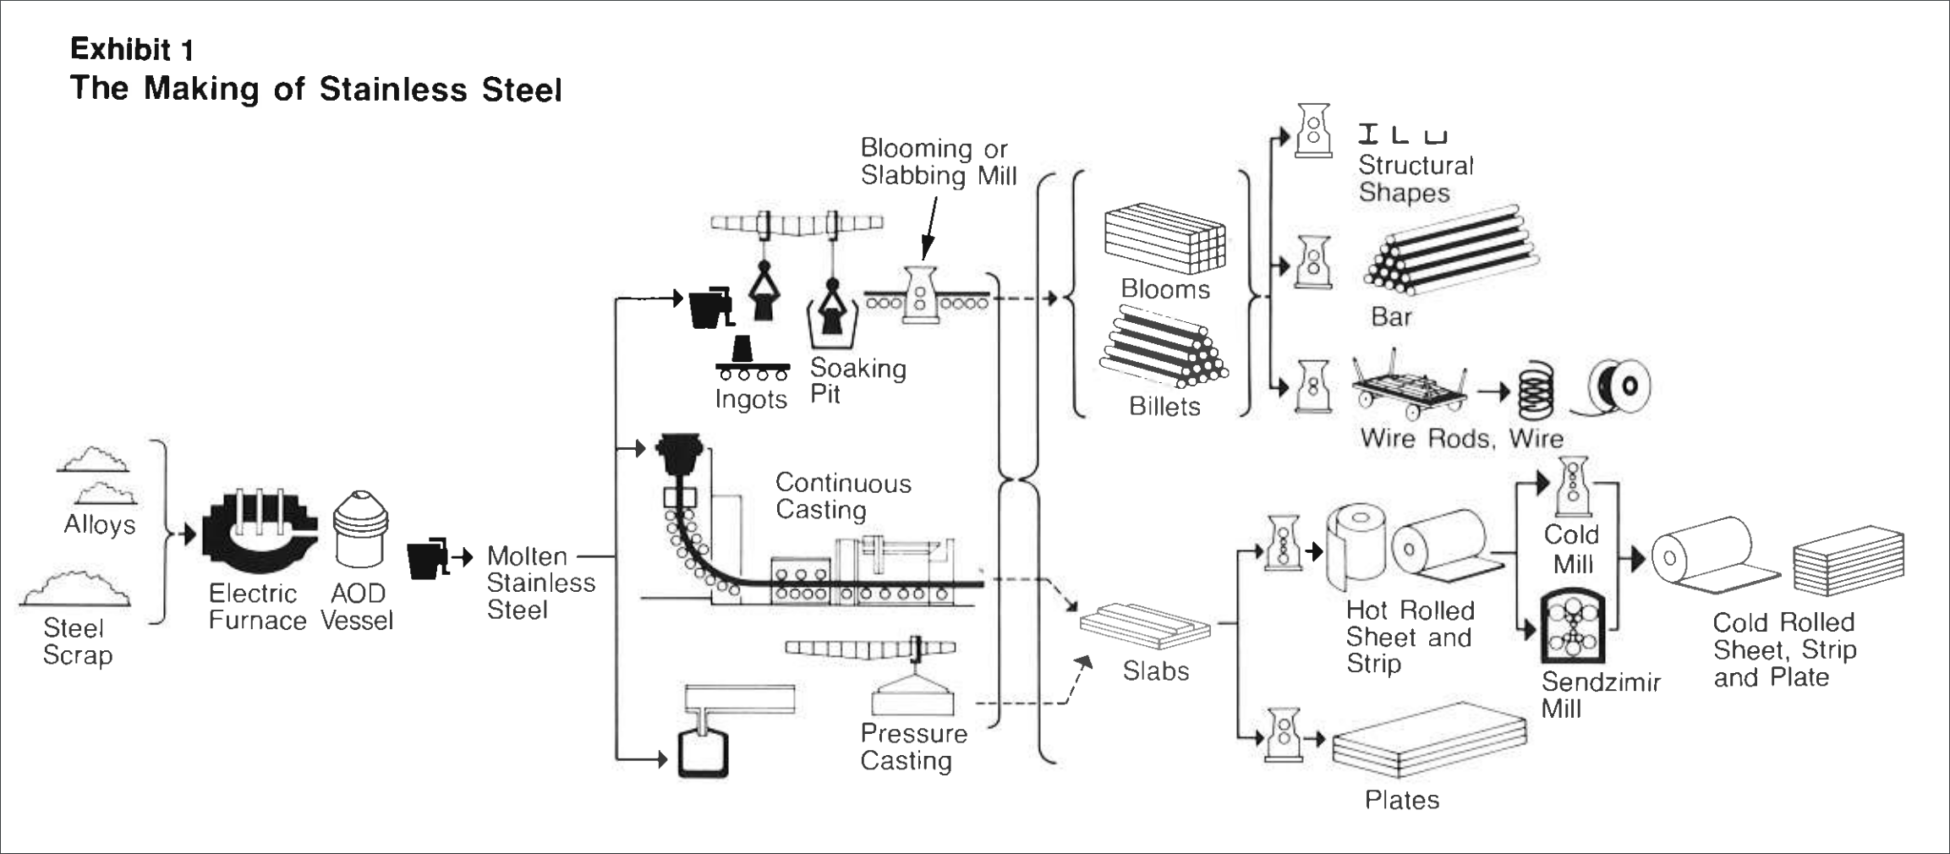 Workflow on how stainless steel is made